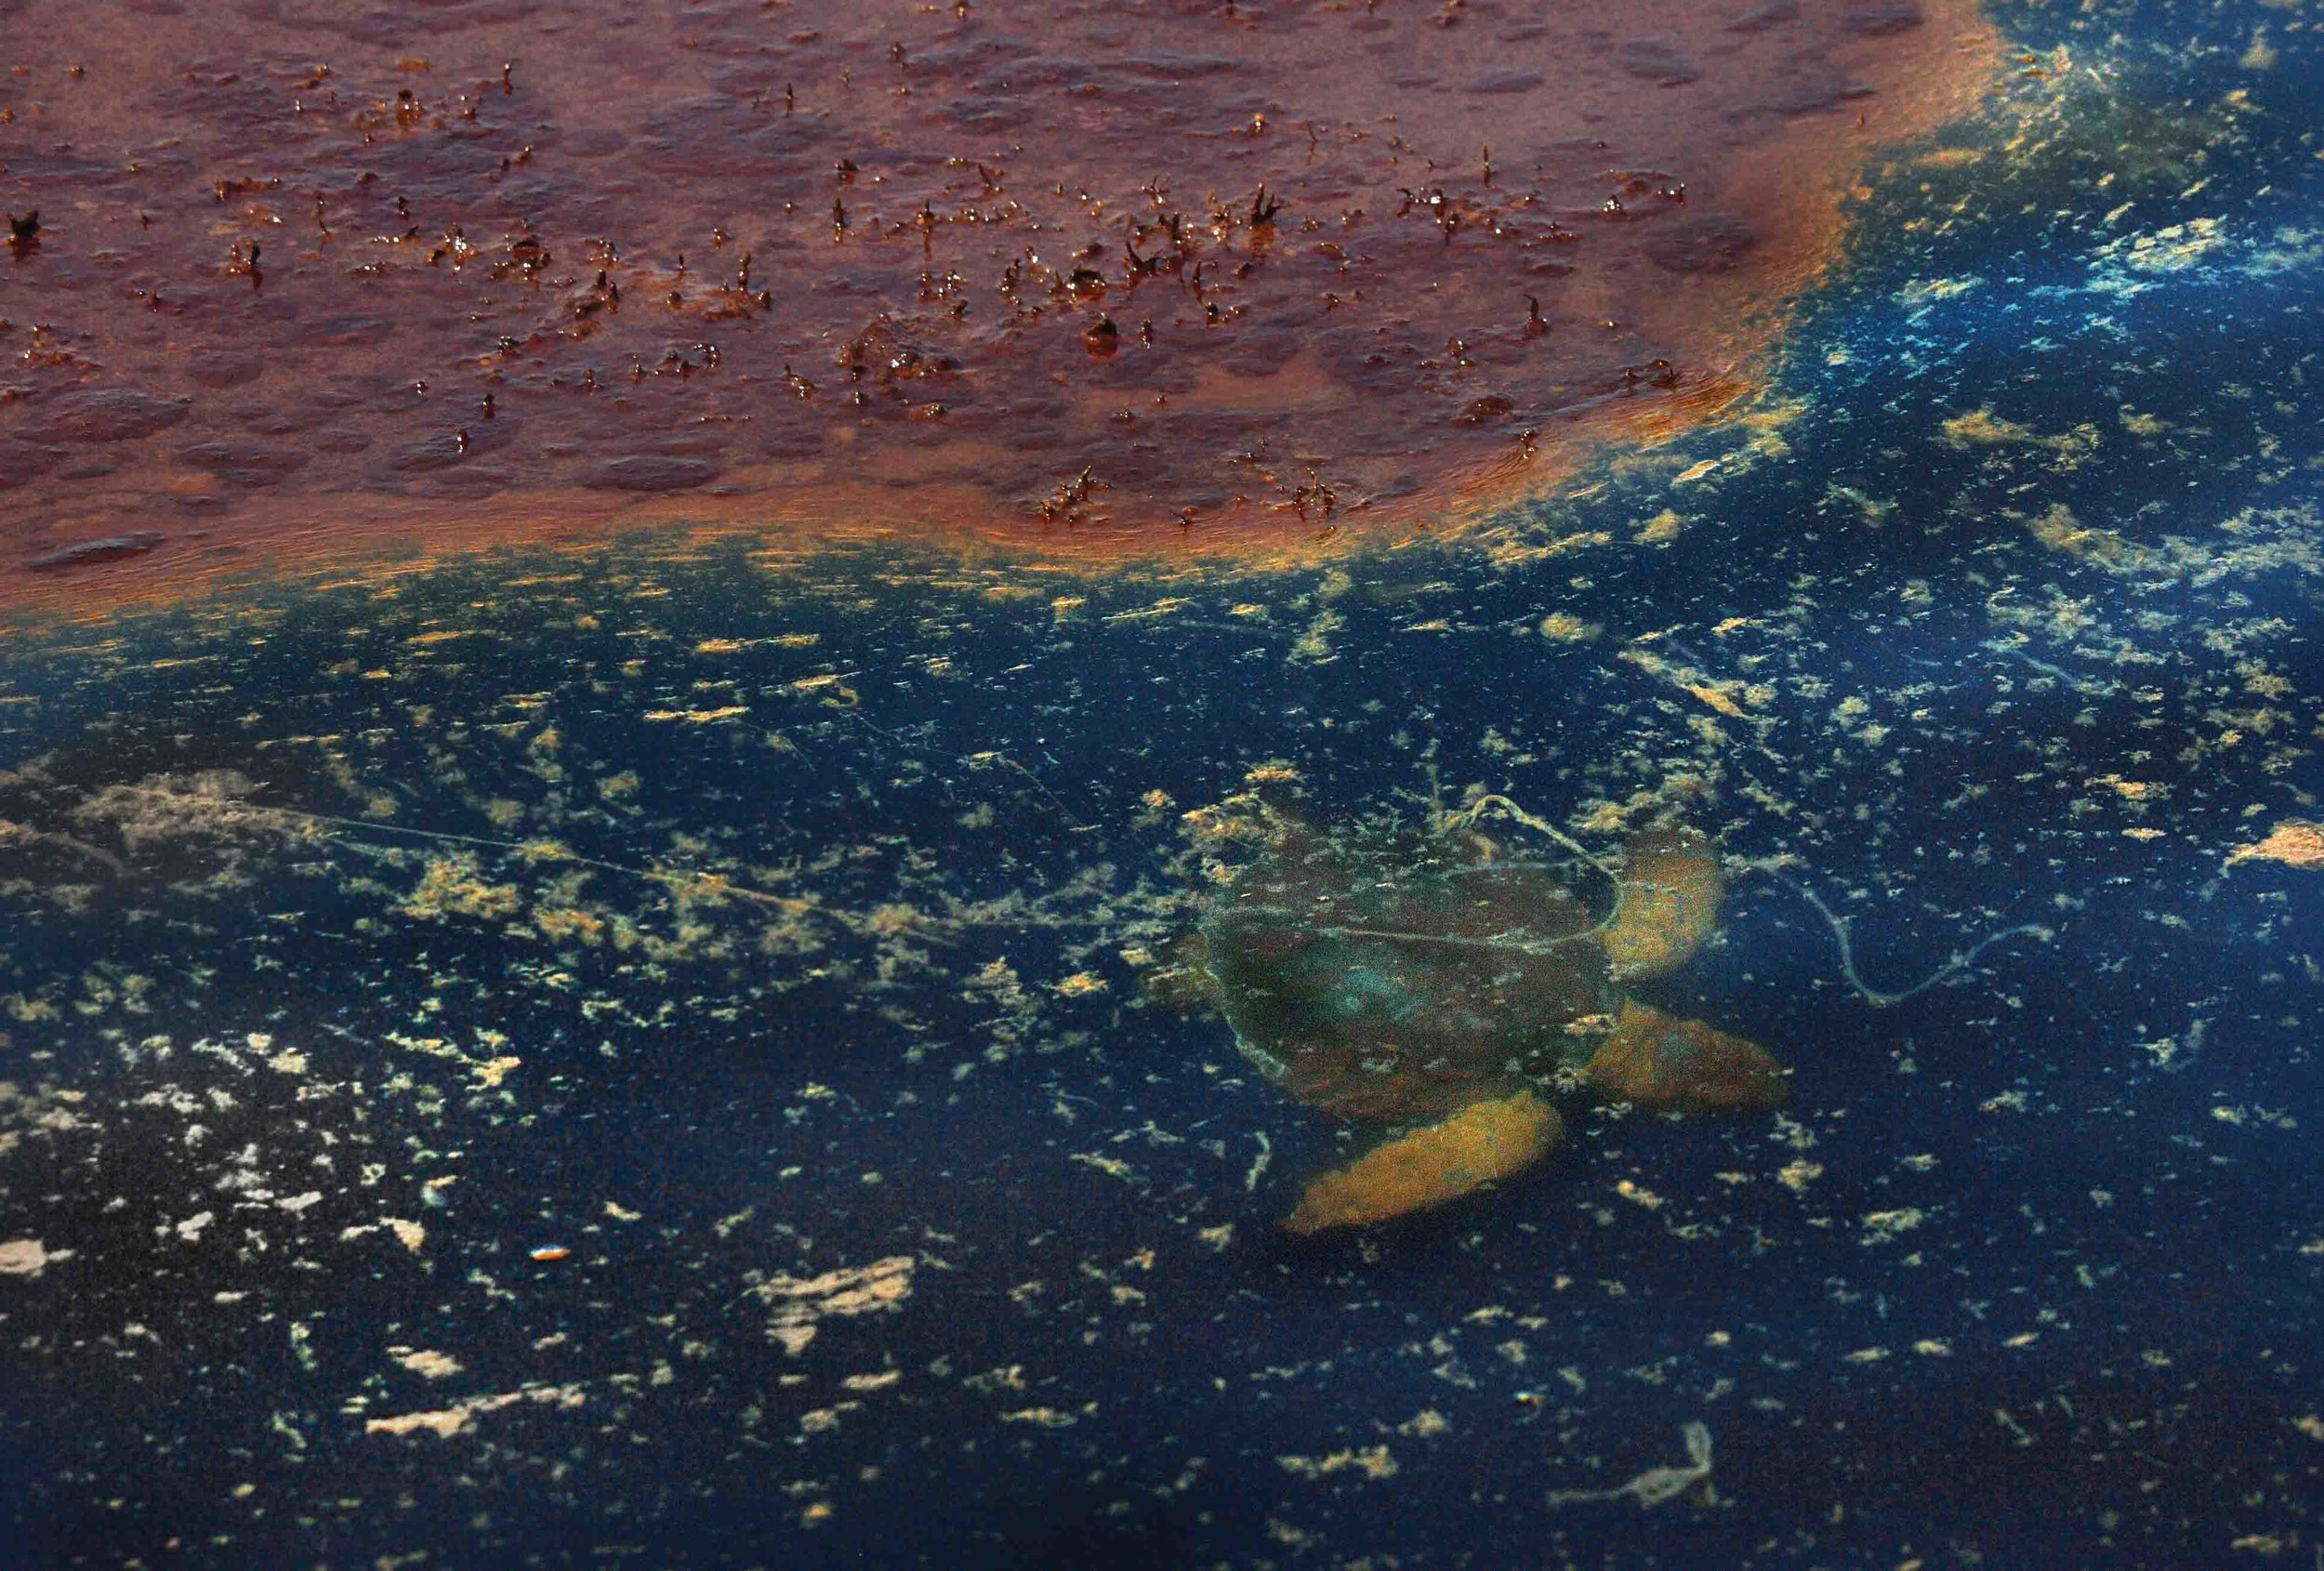 A Kemp's ridley turtle swims out from under an oil slick as rescue workers attempt to capture the animal for rehabilitation. Unfortunately, this turtle could not be successfully captured. © Carolyn Cole / Los Angeles Time